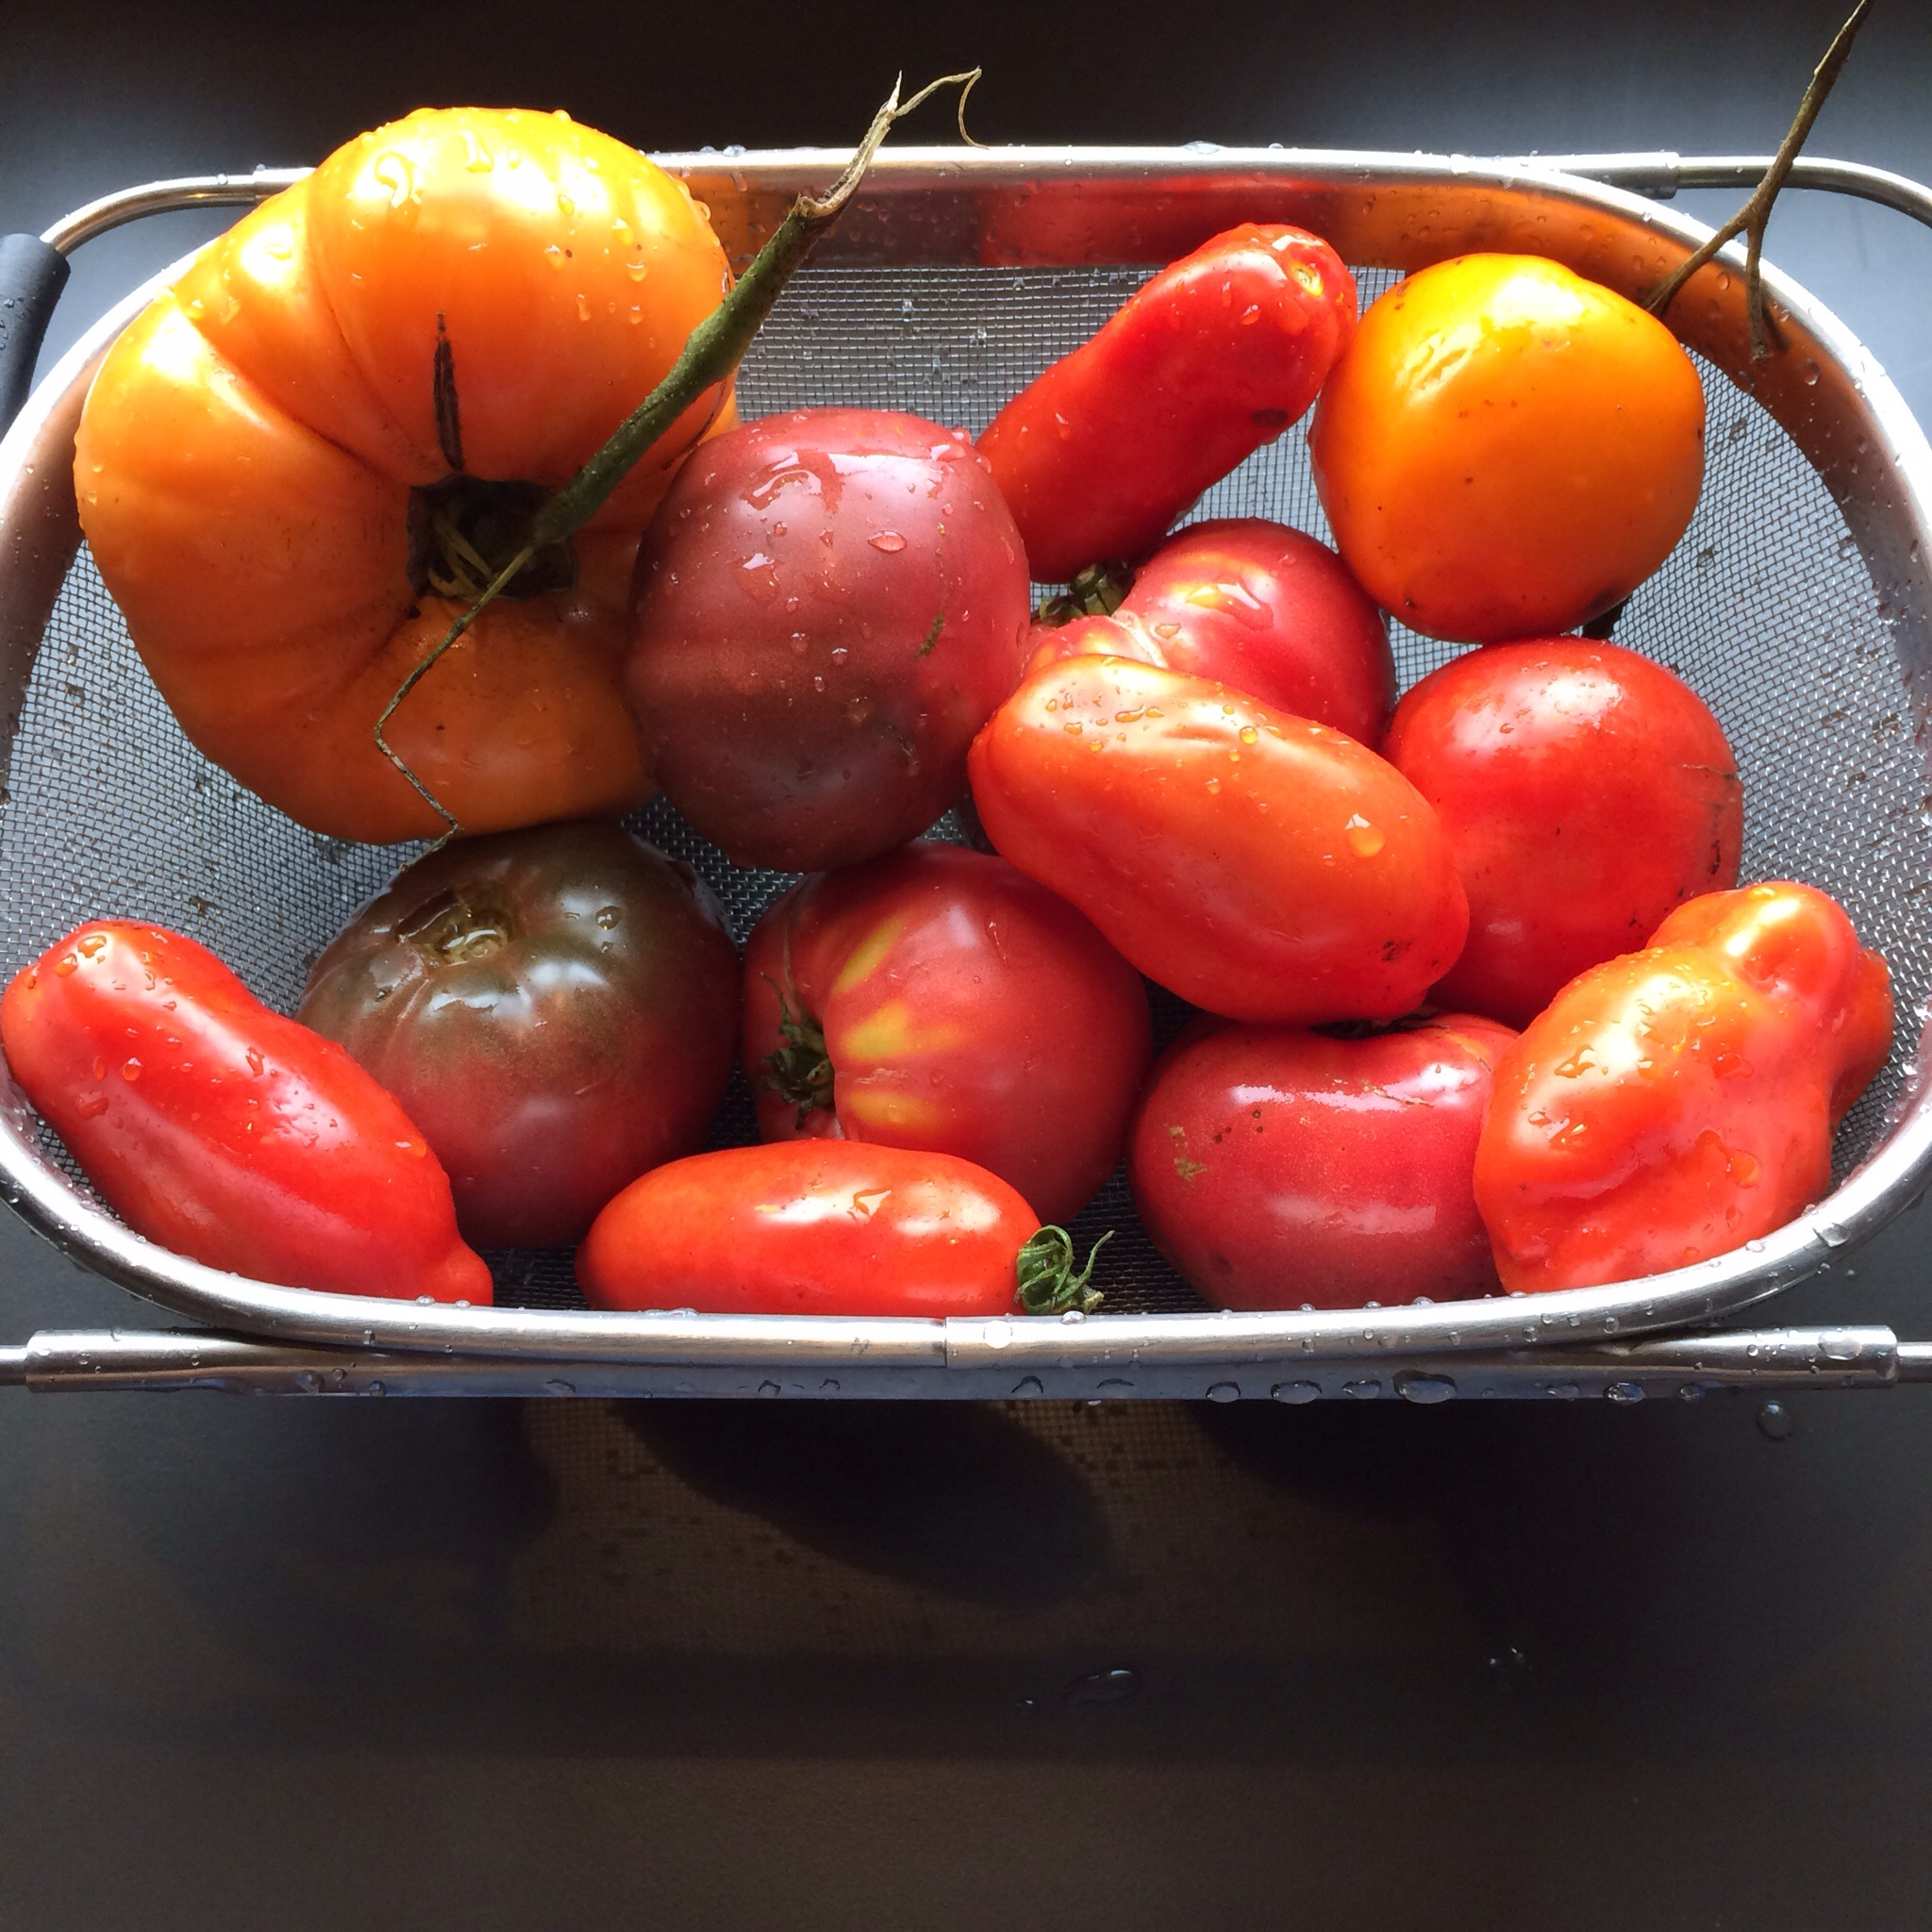 Some of these beauties became salsa, some were roasted in the oven, and others went into sauce.